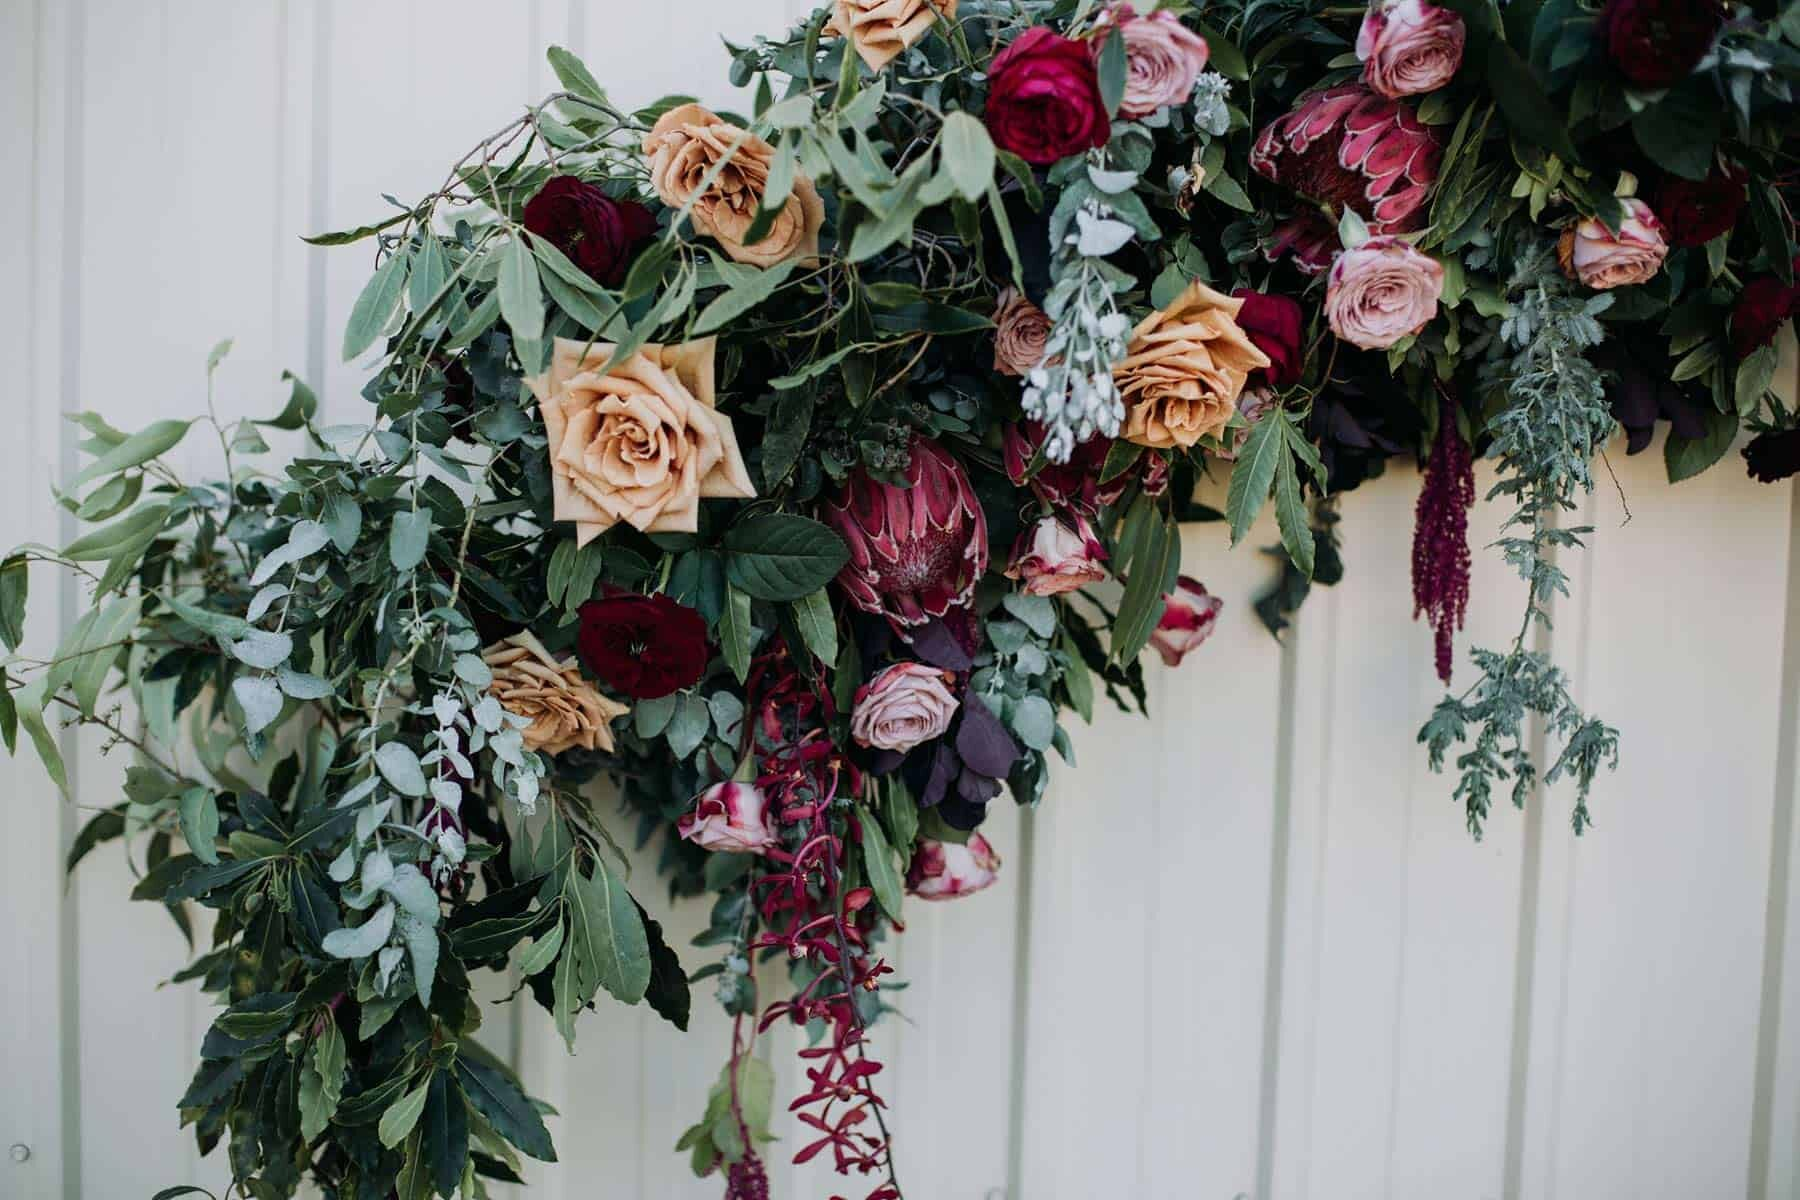 Circle floral arbour with lots of greenery